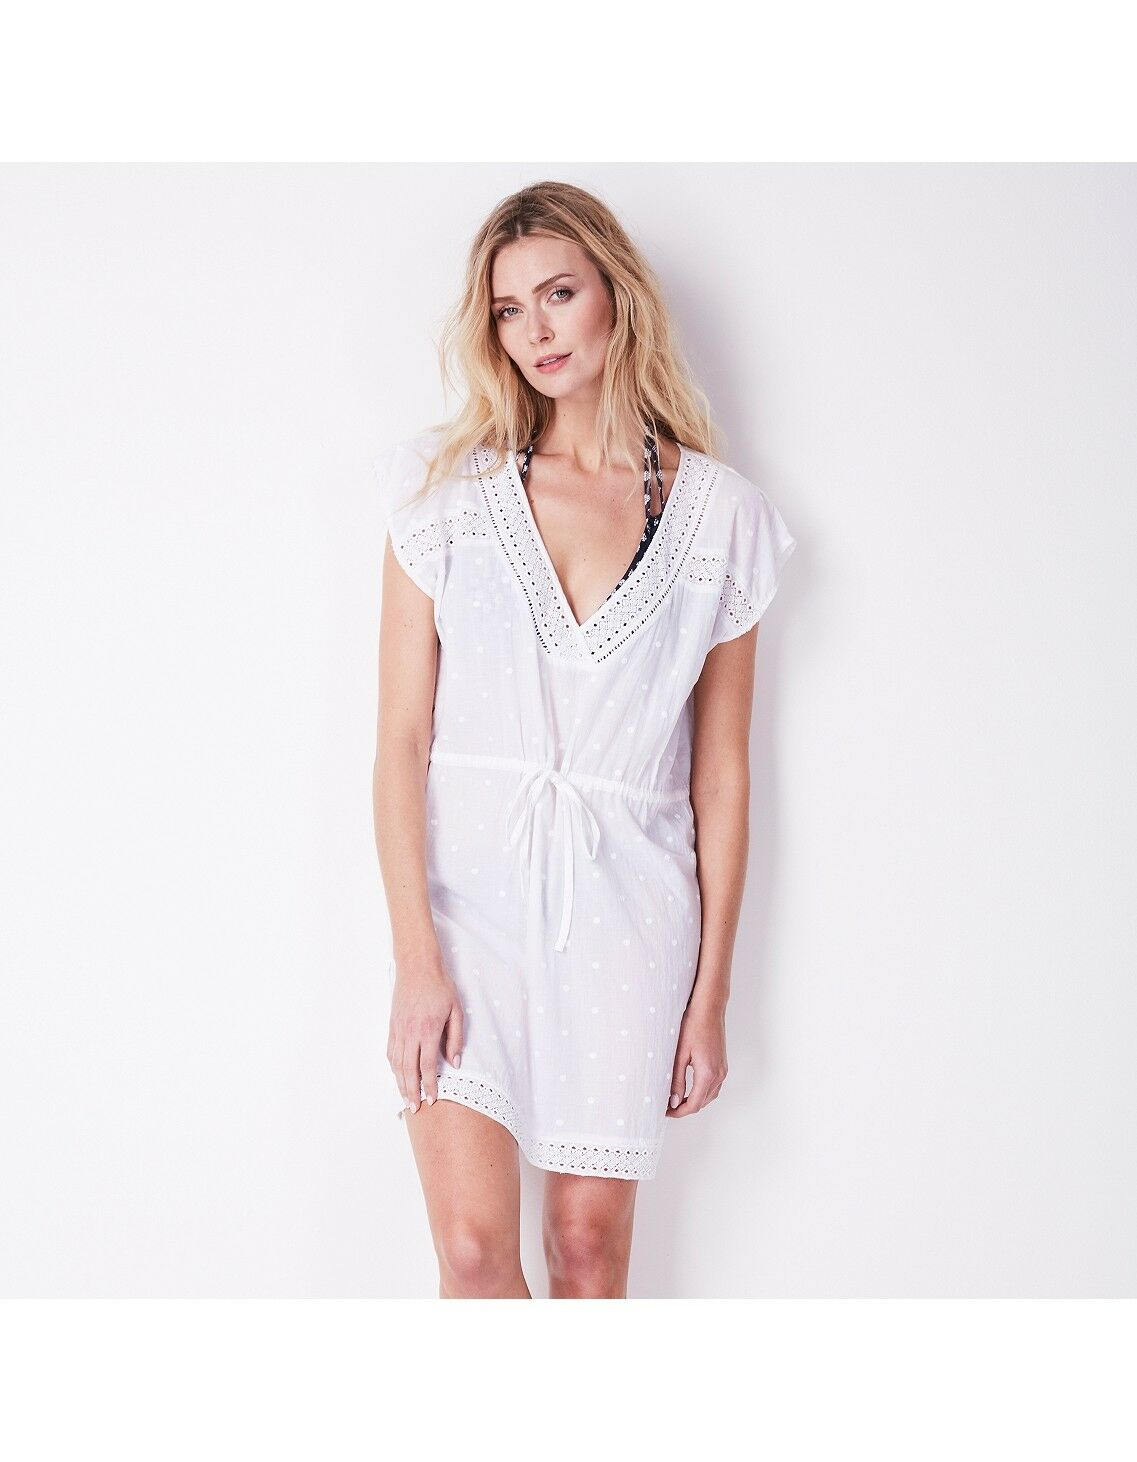 The White Company Lace Edge Beach Cover Up White Size L LF081 EE 06